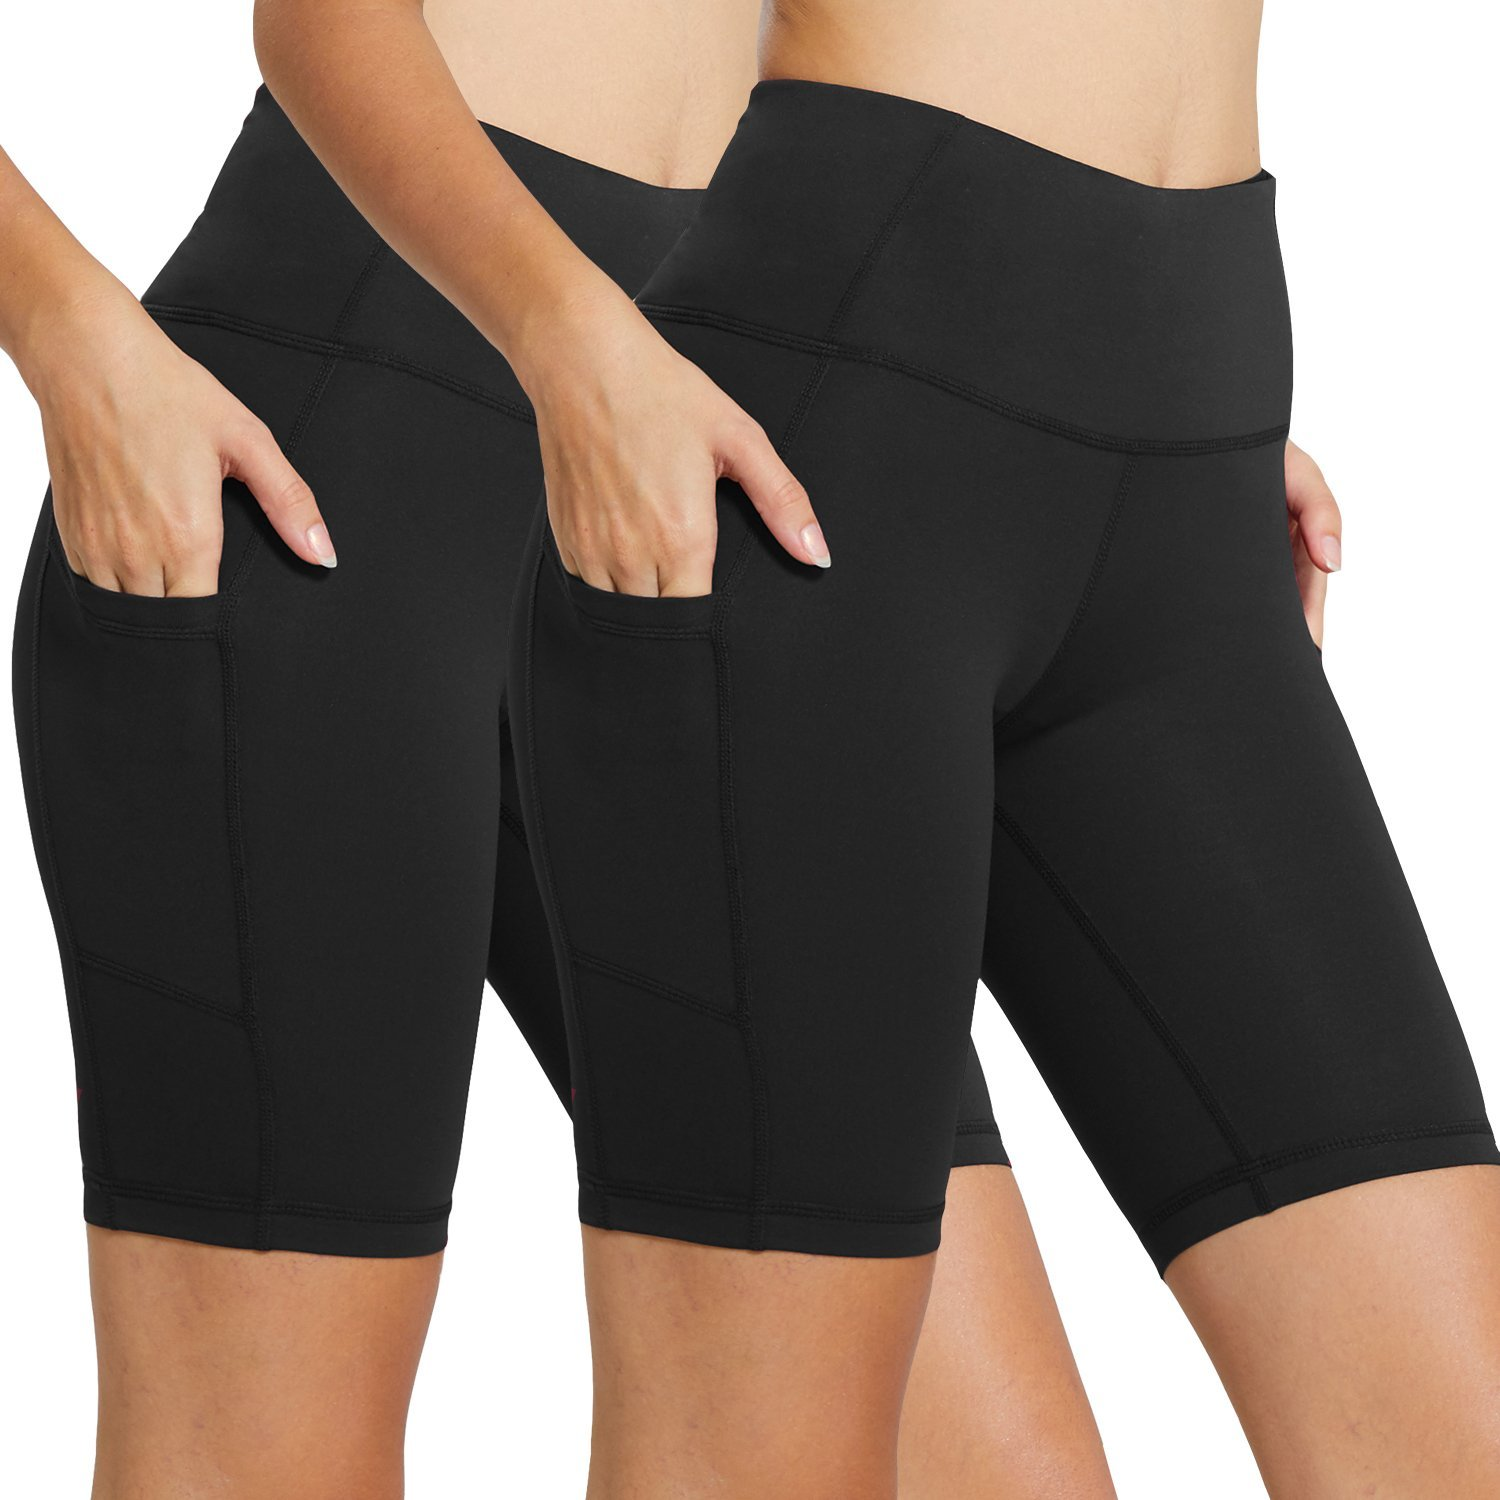 BALEAF Women's 8'' High Waist Tummy Control Workout Yoga Shorts Side Pockets 2-Pack Black/Black Size XS